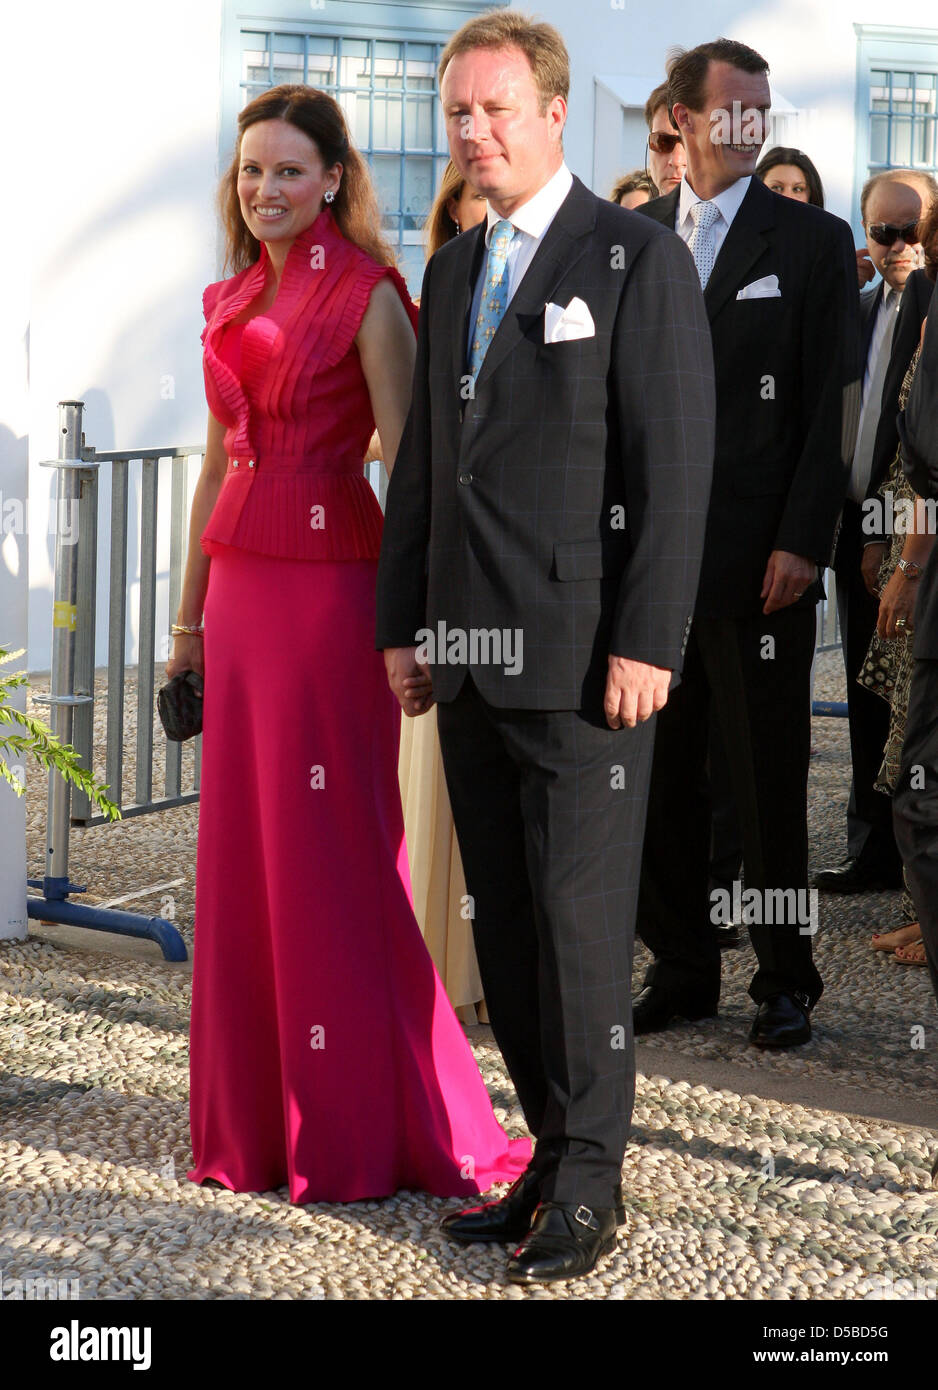 Prince Gustav of Sayn-Wittgenstein-Berleburg and his fiancee Carina Axelsson arrive at the Agios Nikolaos church for the wedding ceremony of Nikolaos, son of the former Greek king, and his bride Tatiana Blatnik on Spetses Island, Greece, 25 August 2010. The couple got married in the whitewashed 19th-century cathedral. The wedding was attended by royals from all over Europe, includi Stock Photo